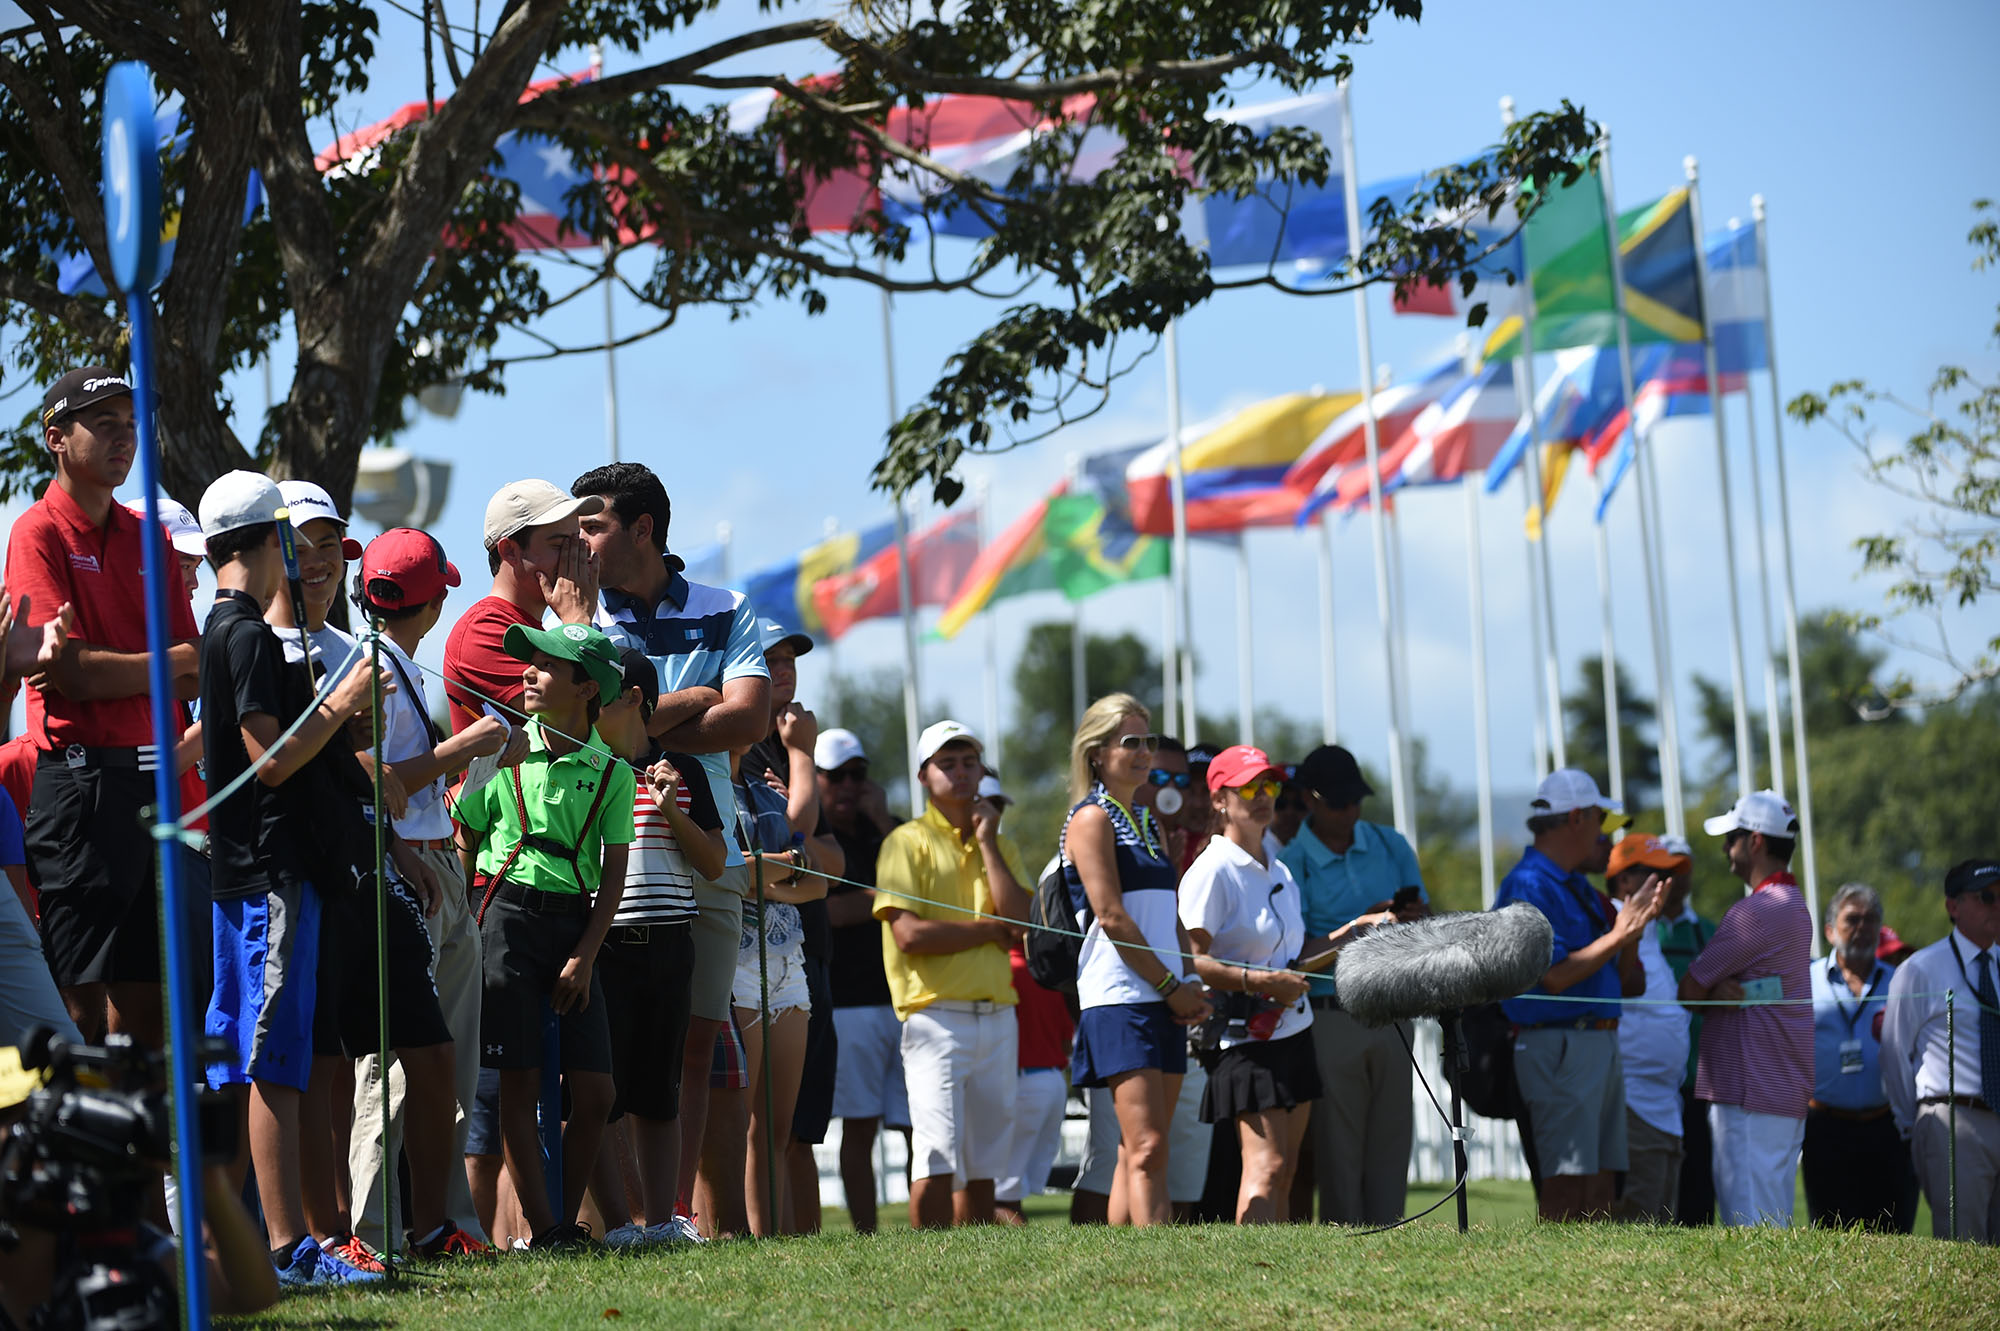 Panama City, Panama:pictured at the 2017 Latin America Amateur Championship at the Club de Golf de Panama during Round Four on January 15th . (Photo by Enrique Berardi/LAAC)